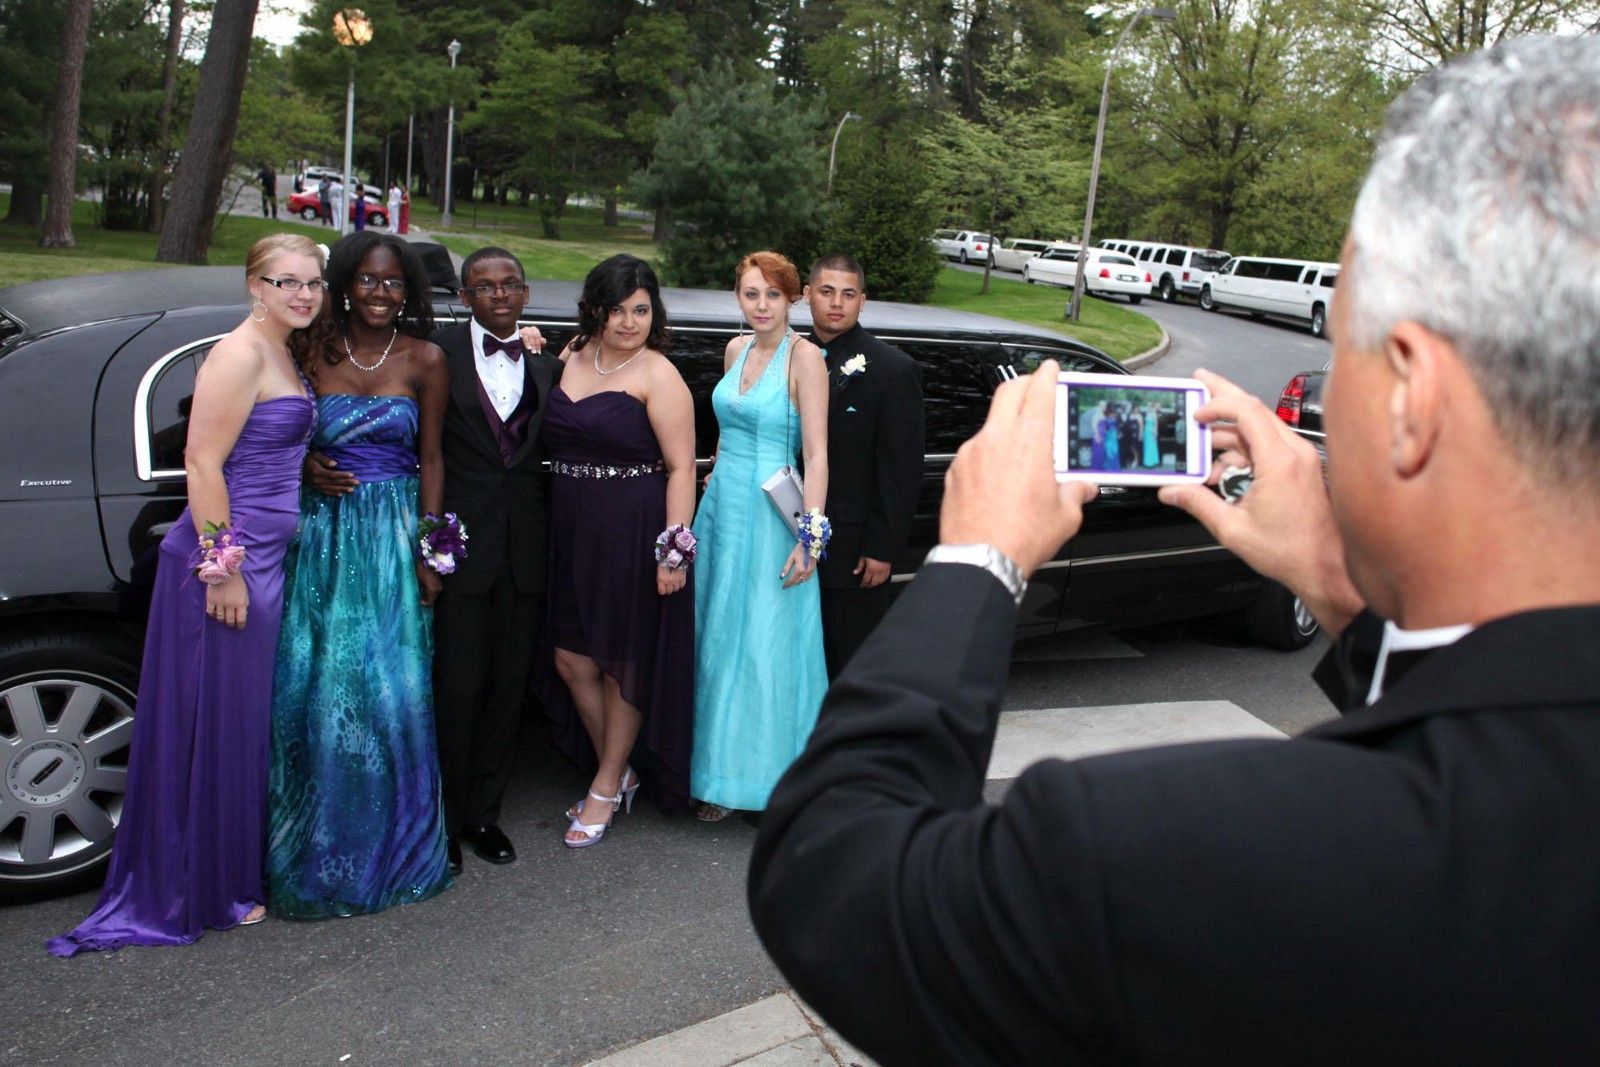 Limo Prom Remarkable Prom Memories With Boston Limo Rental Limo Nationwide